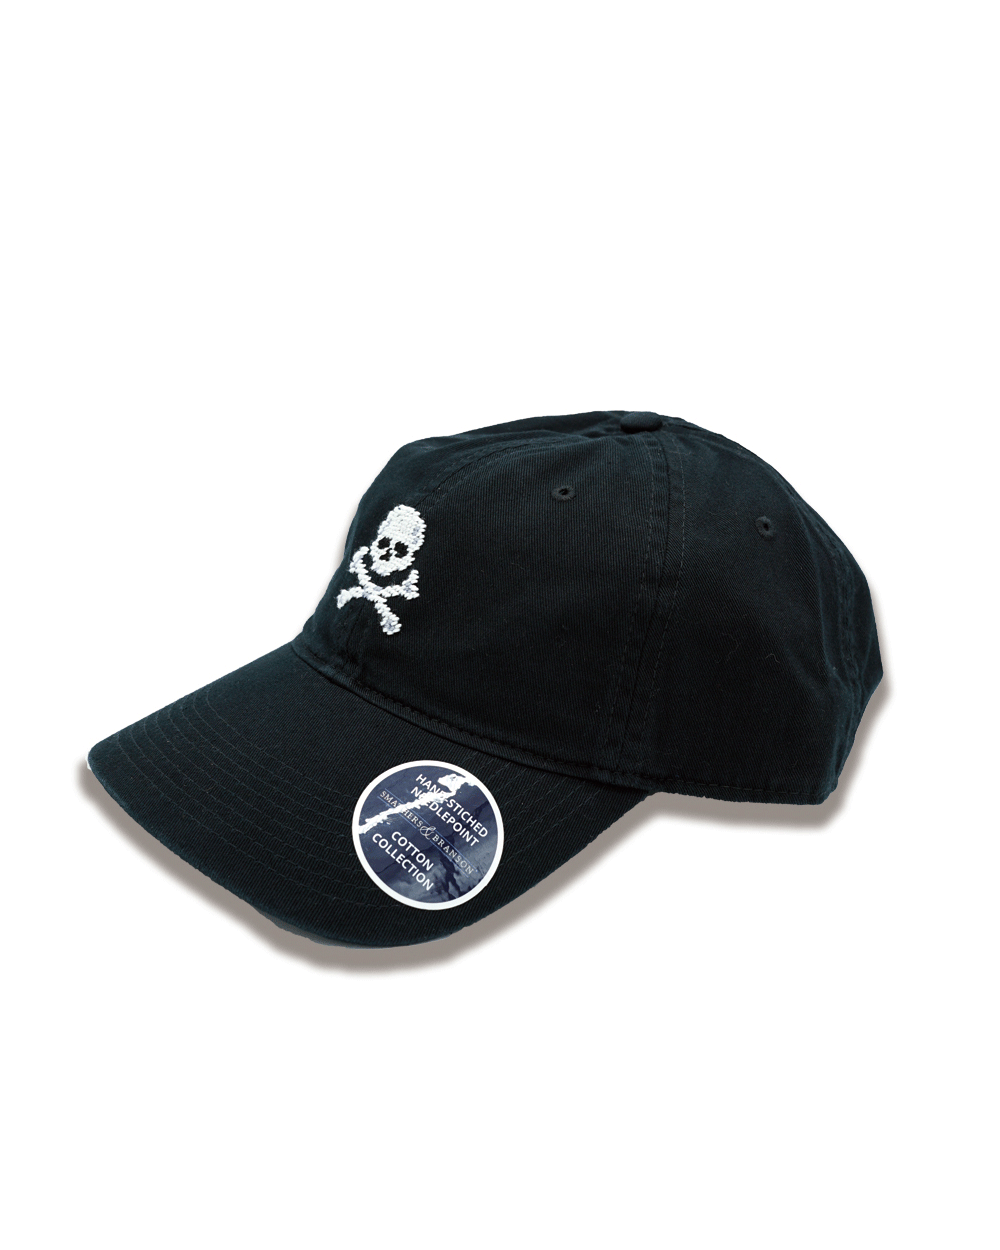 SMATHERS&BRANSON Jolly Roger Needlepoint Hat (Black)